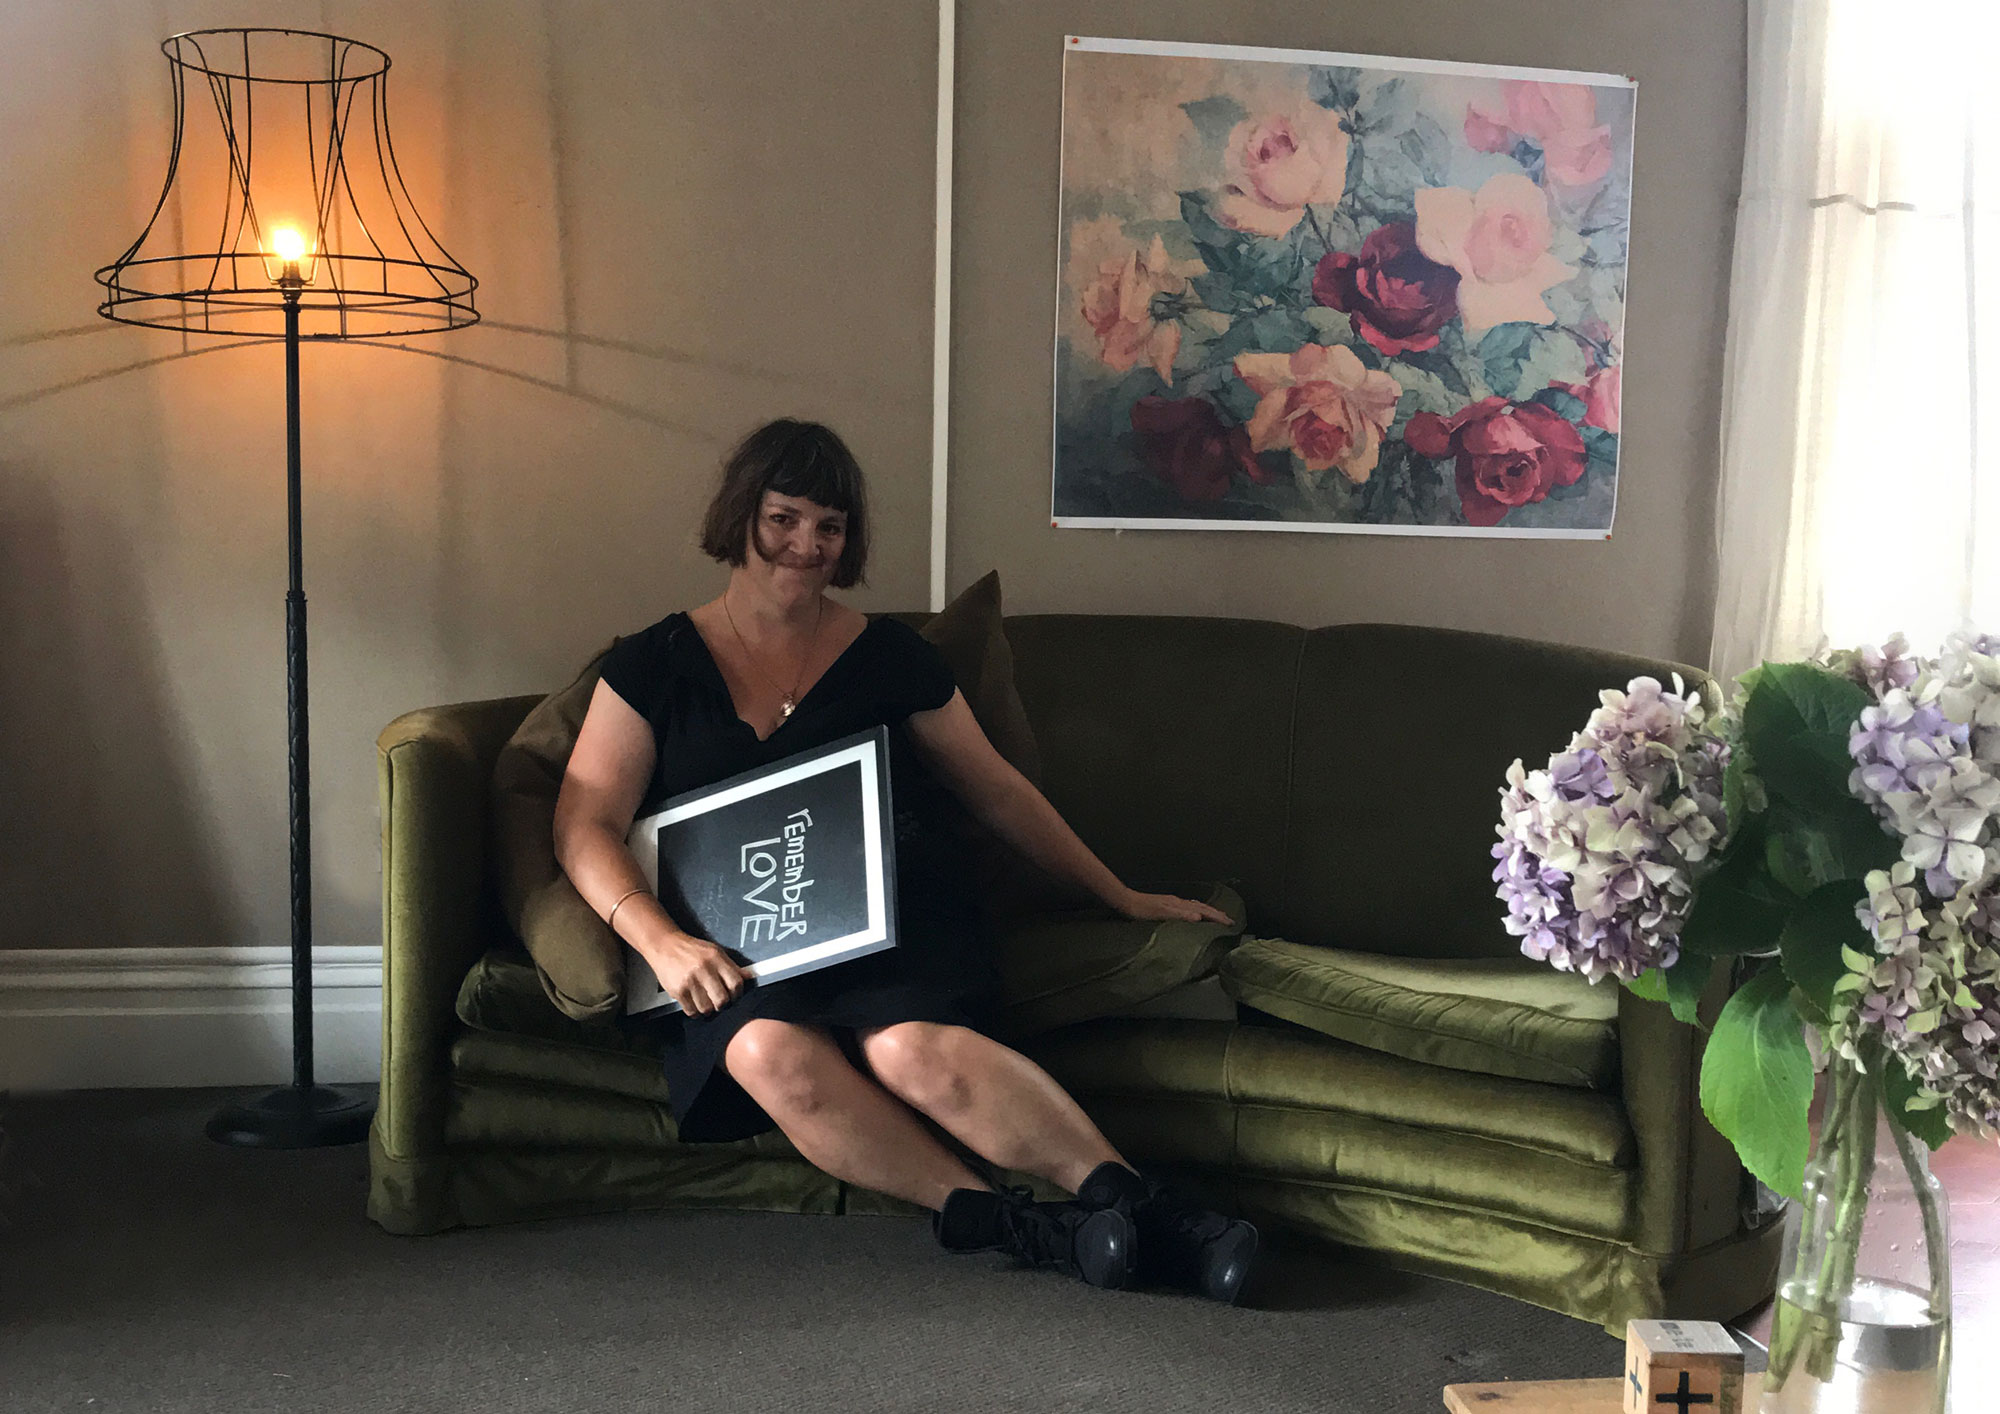 Me in my lounge (the site for the exhibition) along with testprints for the show, January 2018